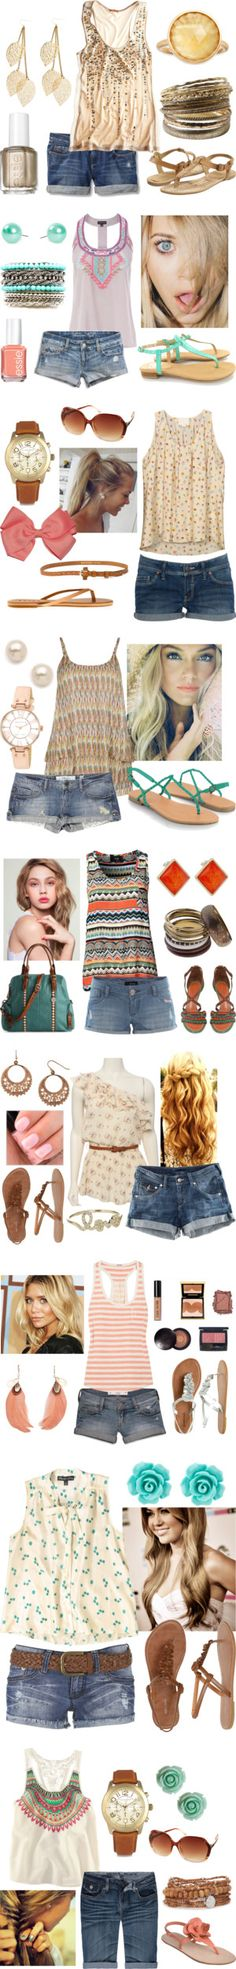 """Sweet Summertime"" by qtpiekelso on Polyvore"